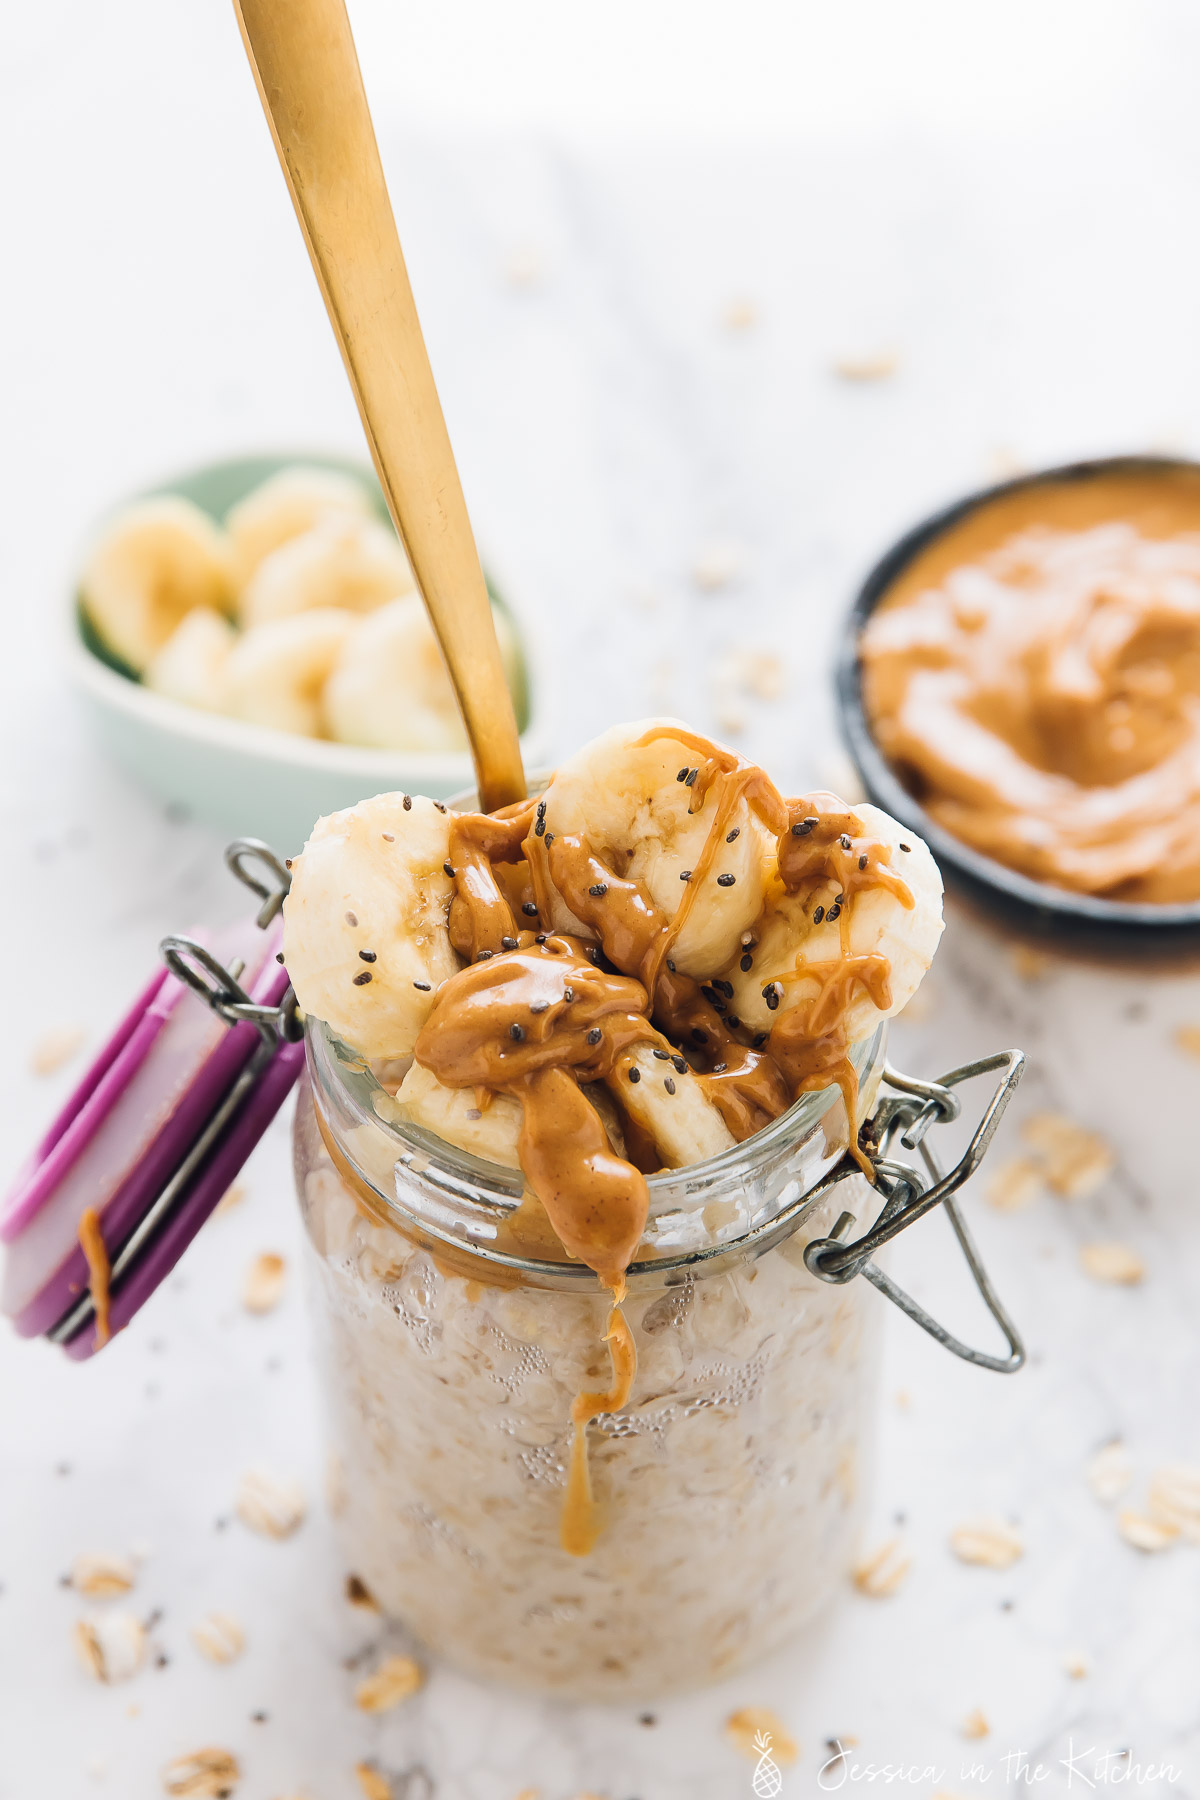 I love how easy these Peanut Butter Banana Overnight Oats are to make! They take 5 minutes to prep, and are made overnight in your fridge! via https://jessicainthekitchen.com